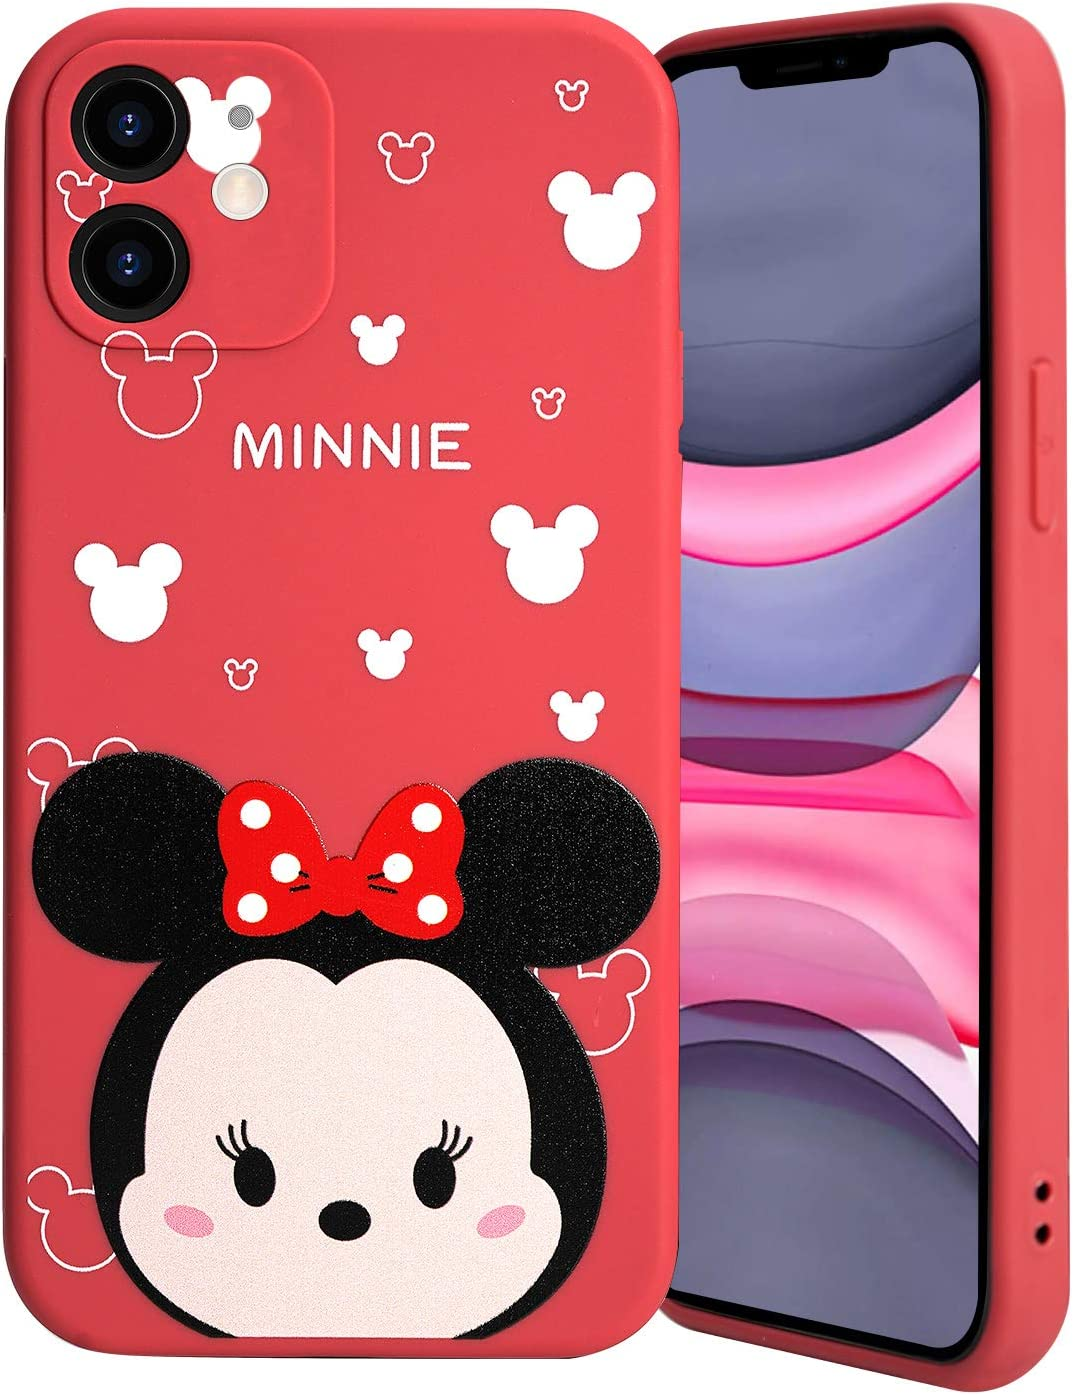 Minnie Character Compatible with iPhone 11 Case, Flexible Rubber Silicone Case Anti-Scratch Slim Design with Bumper Drop Protection, Street Fashion Red Minnie Fully Protective Case for iPhone 11